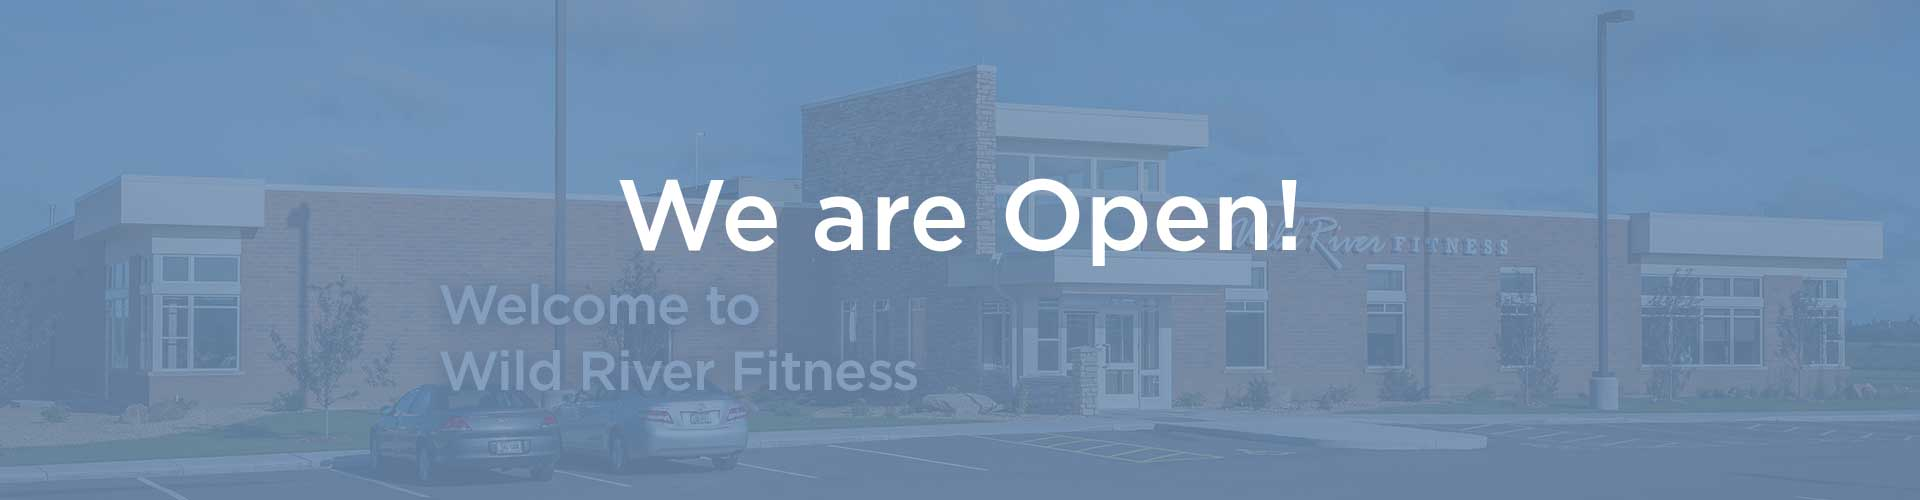 Welcome to Wild River Fitness Banner